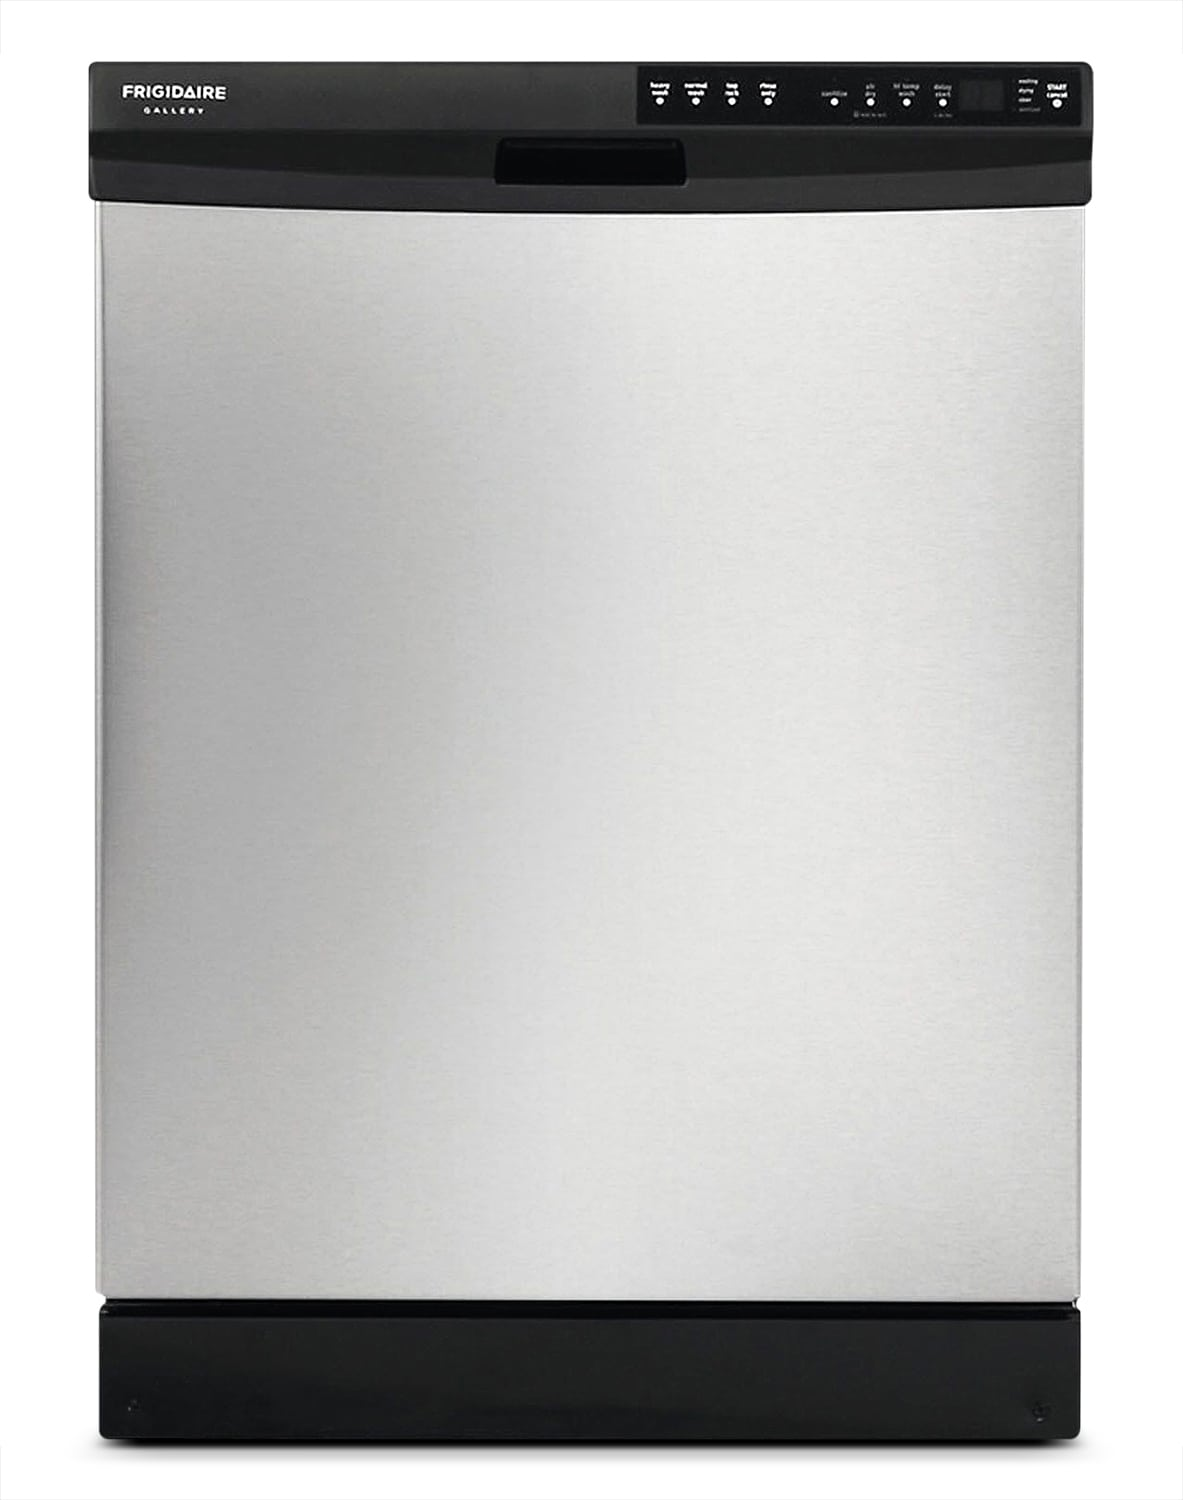 """Clean-Up - Frigidaire Gallery Stainless Steel 24"""" Dishwasher - FGBD2445NF"""